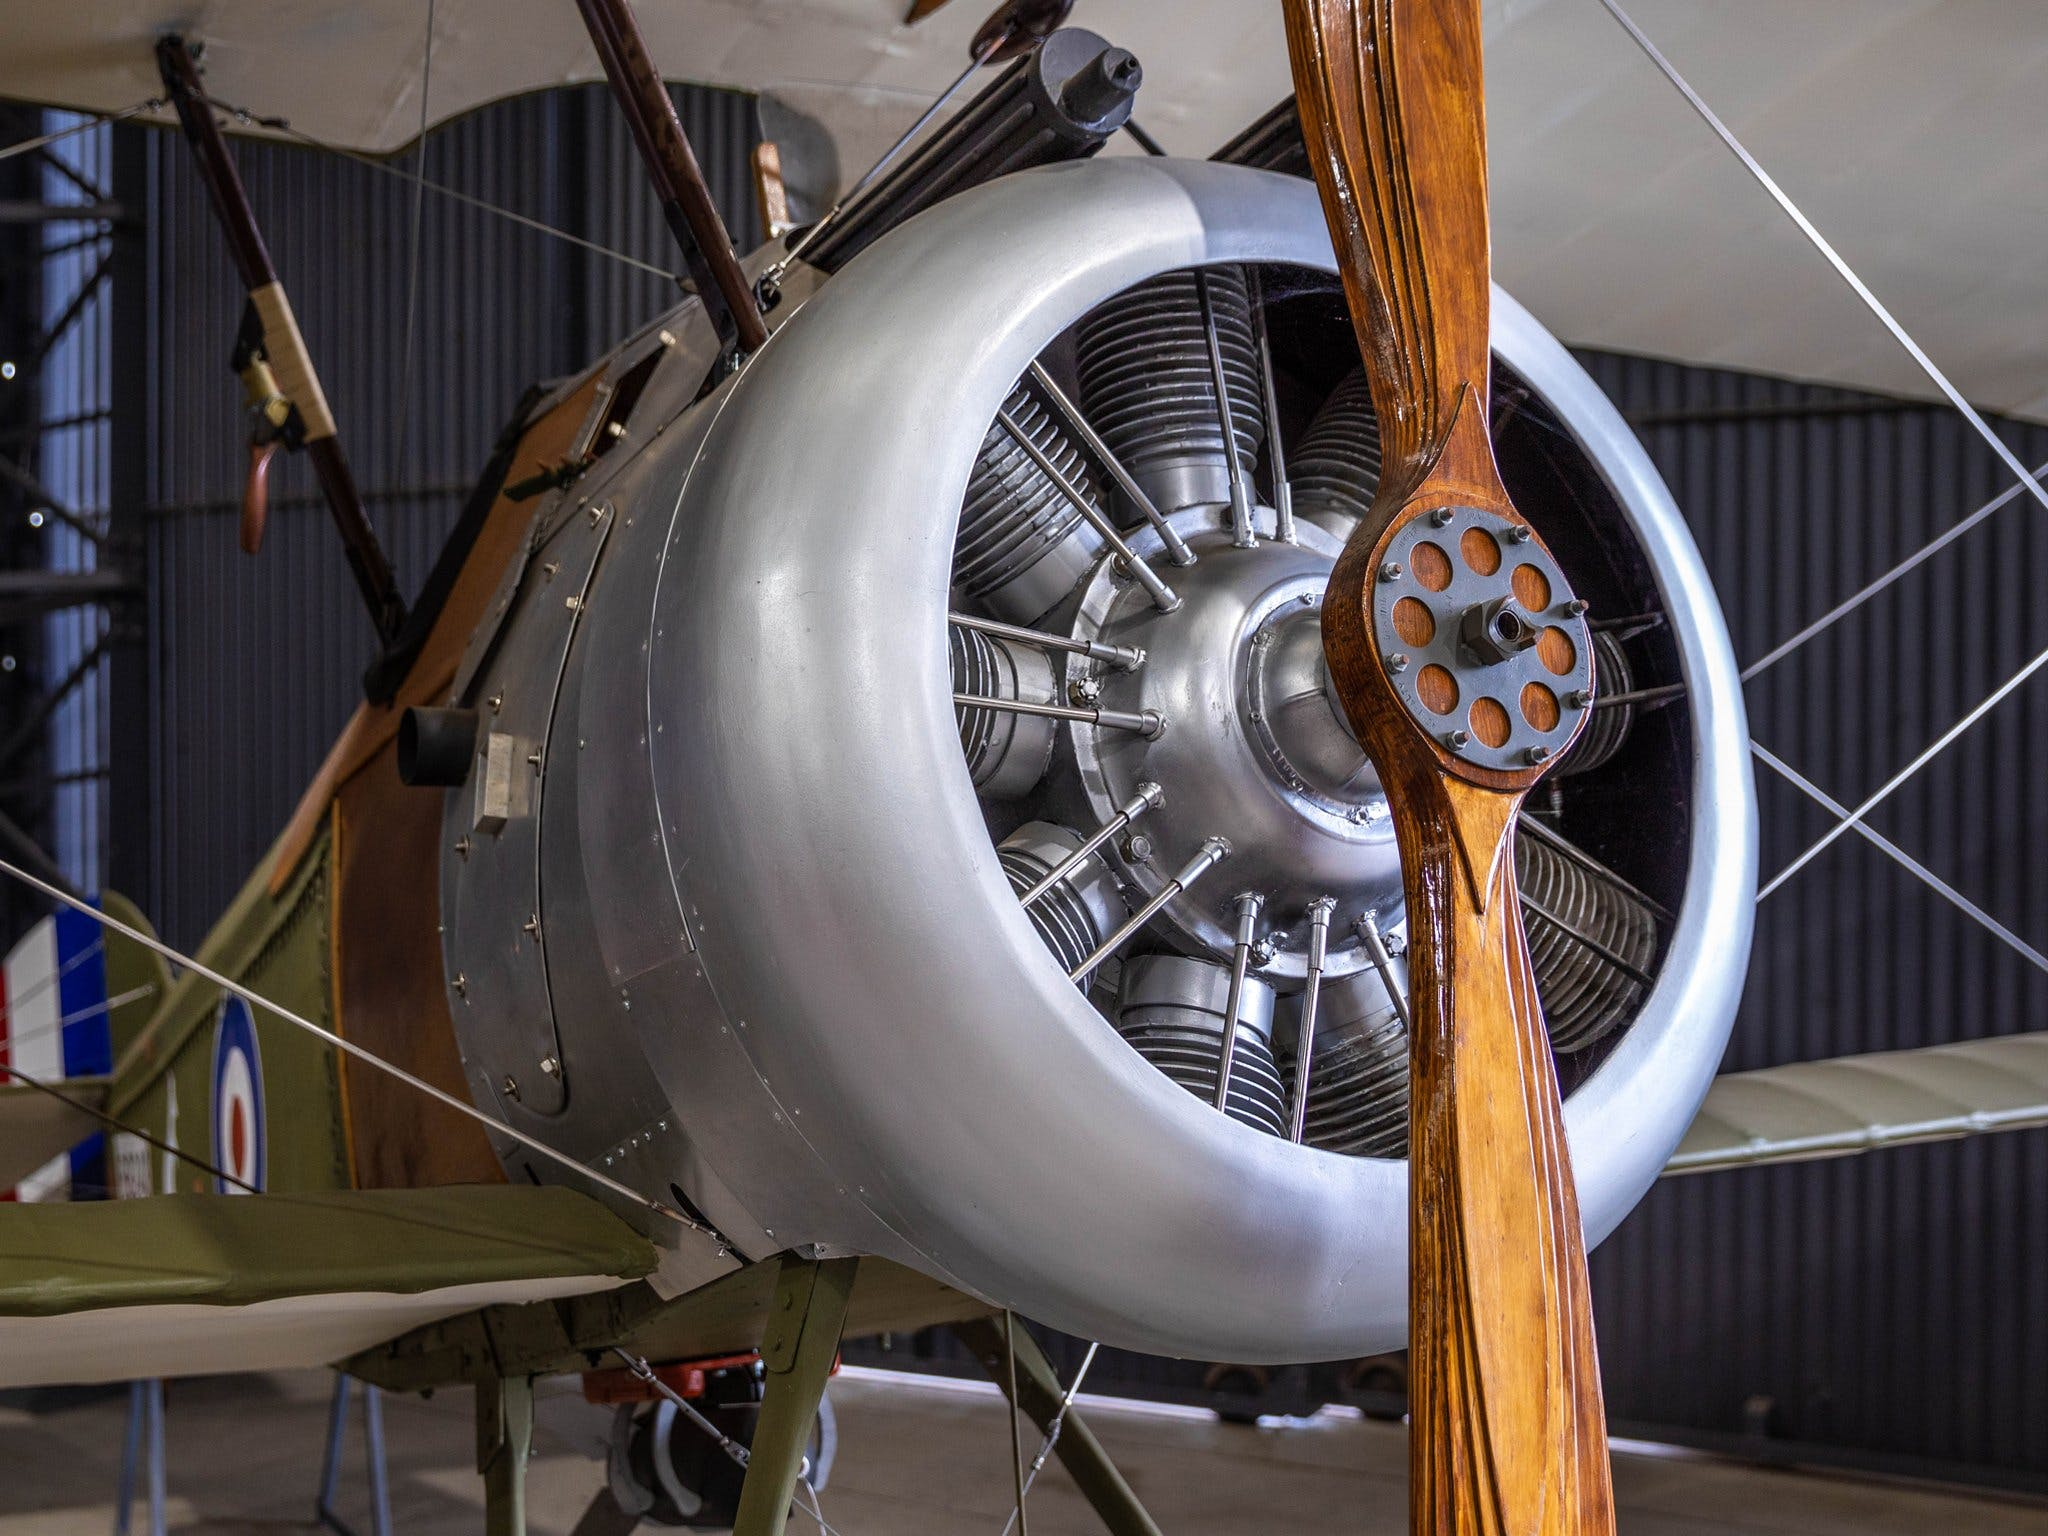 RAAF Amberley Aviation Heritage Centre - Accommodation Coffs Harbour